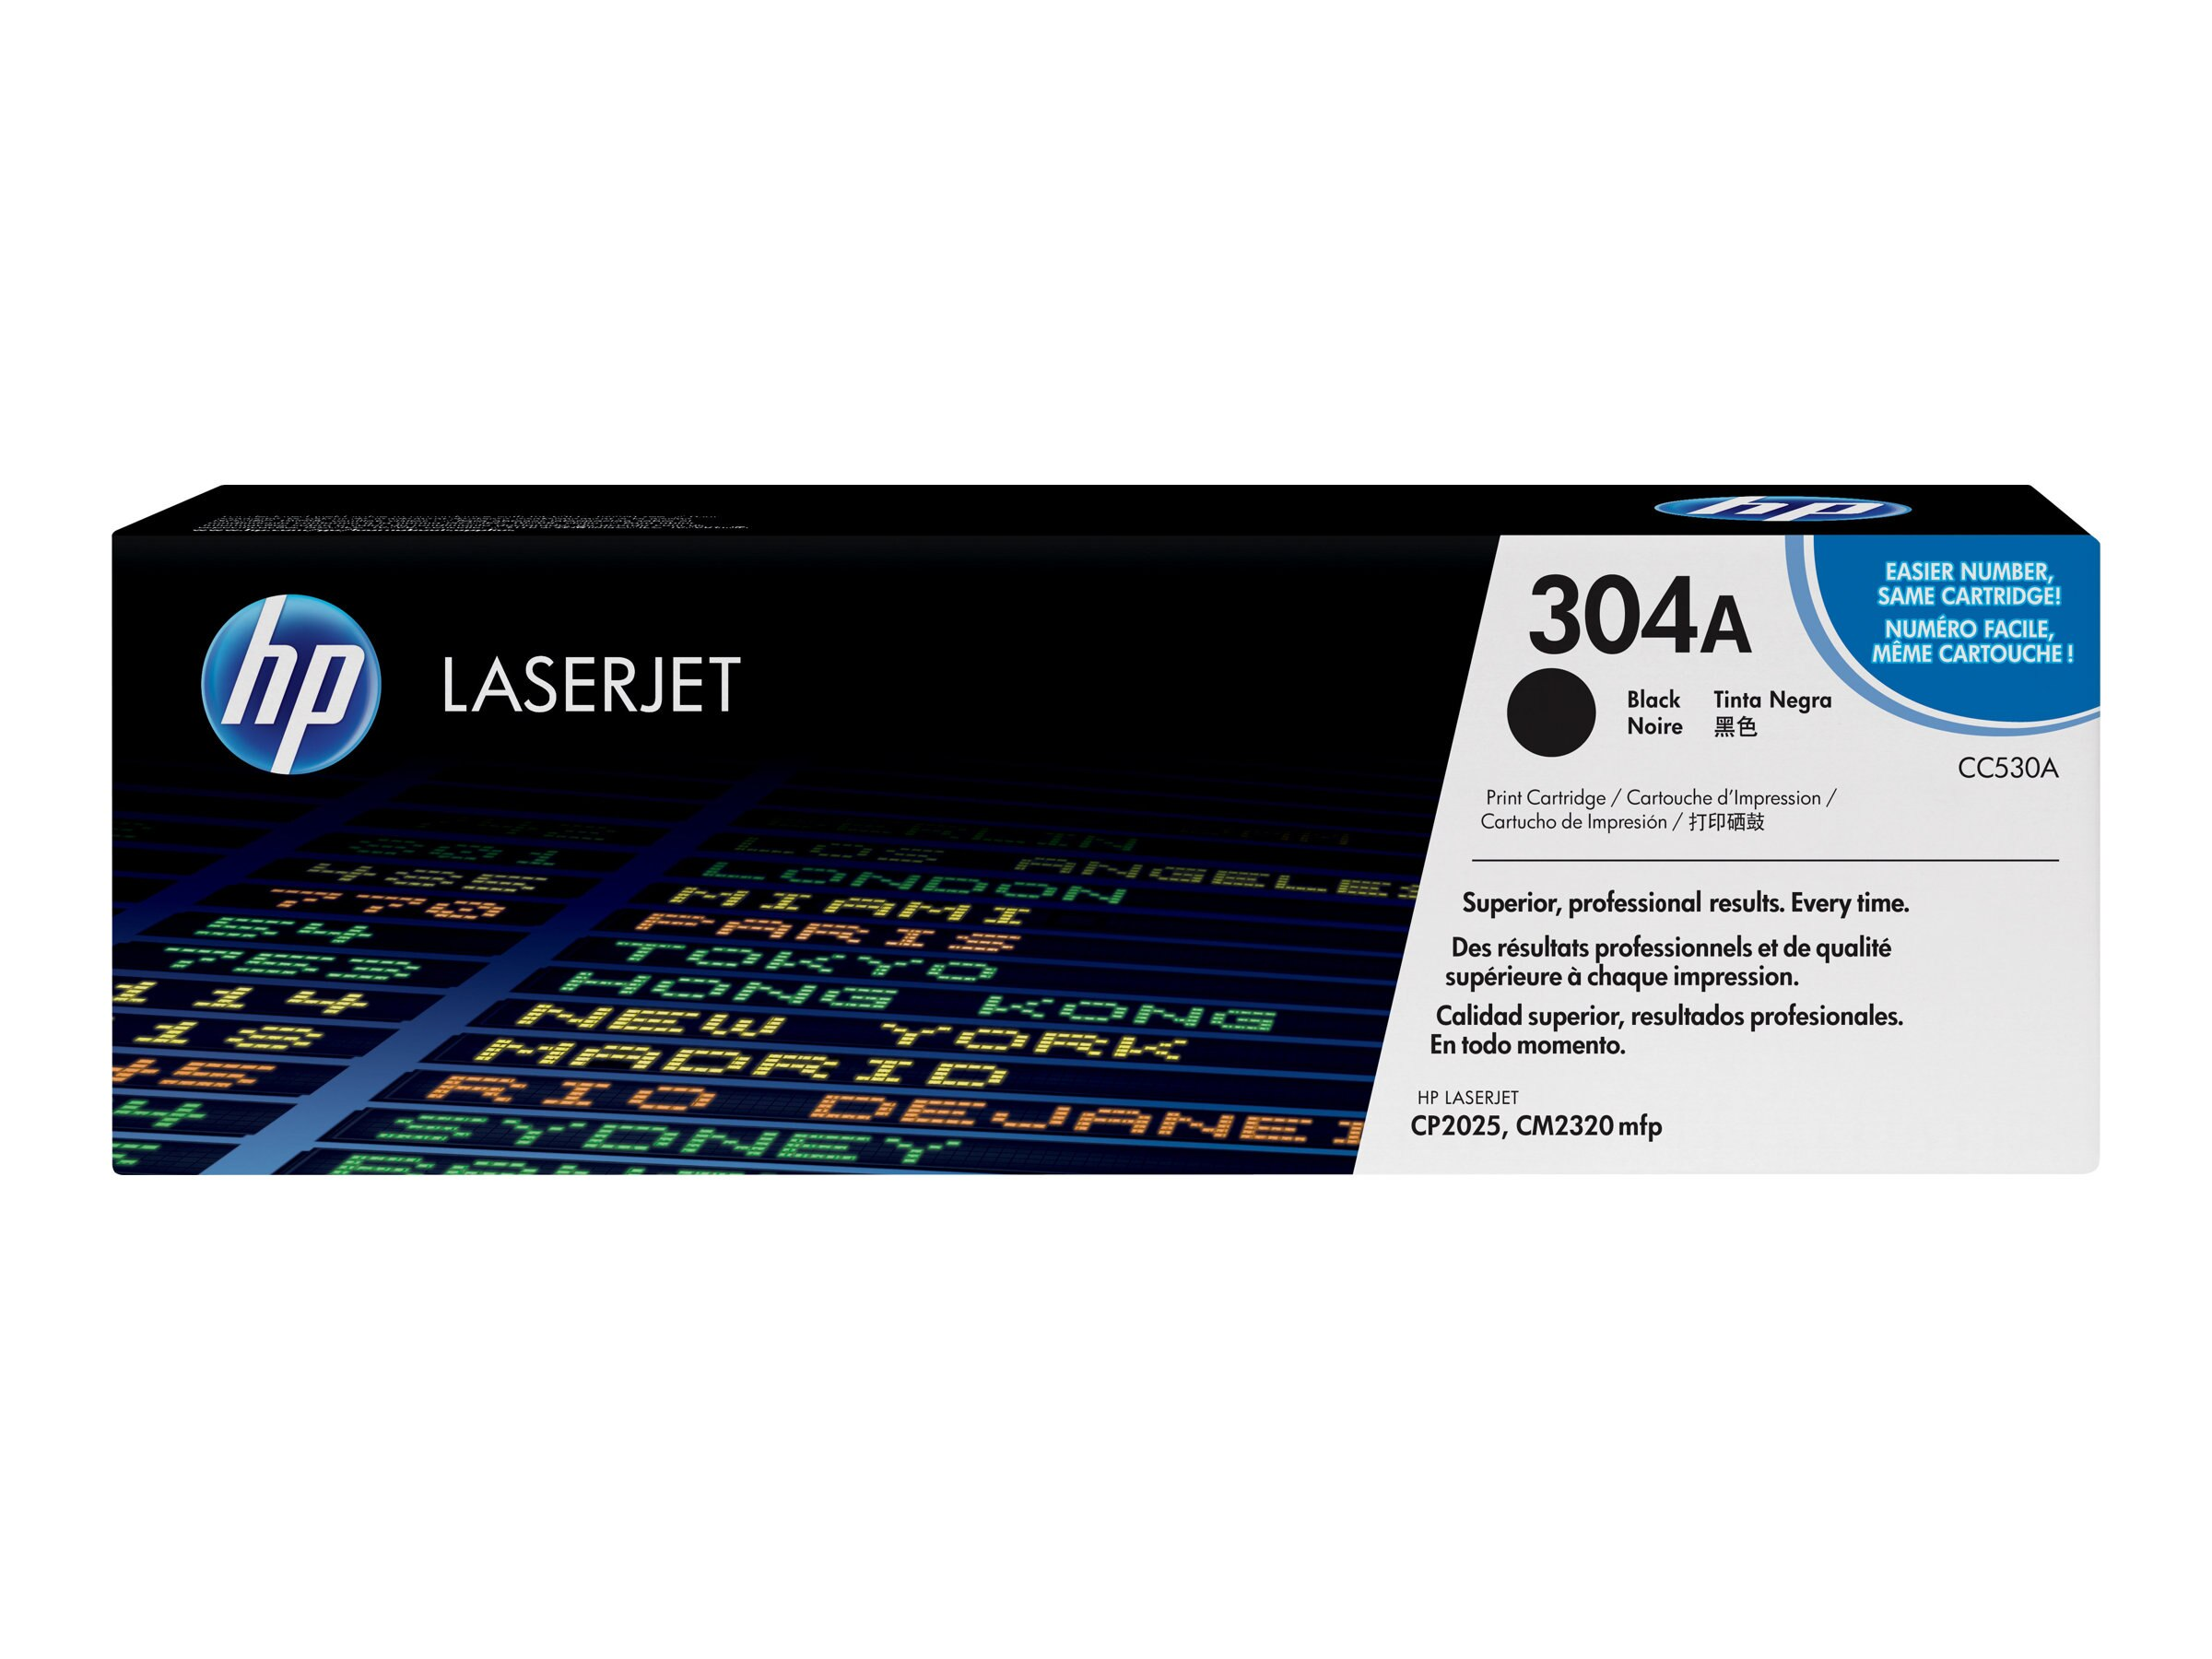 HP 304A (CC530A) Black Original LaserJet Toner Cartridge for HP Color LaserJet CP2025 & CM2320 MFP, CC530A, 8868980, Toner and Imaging Components